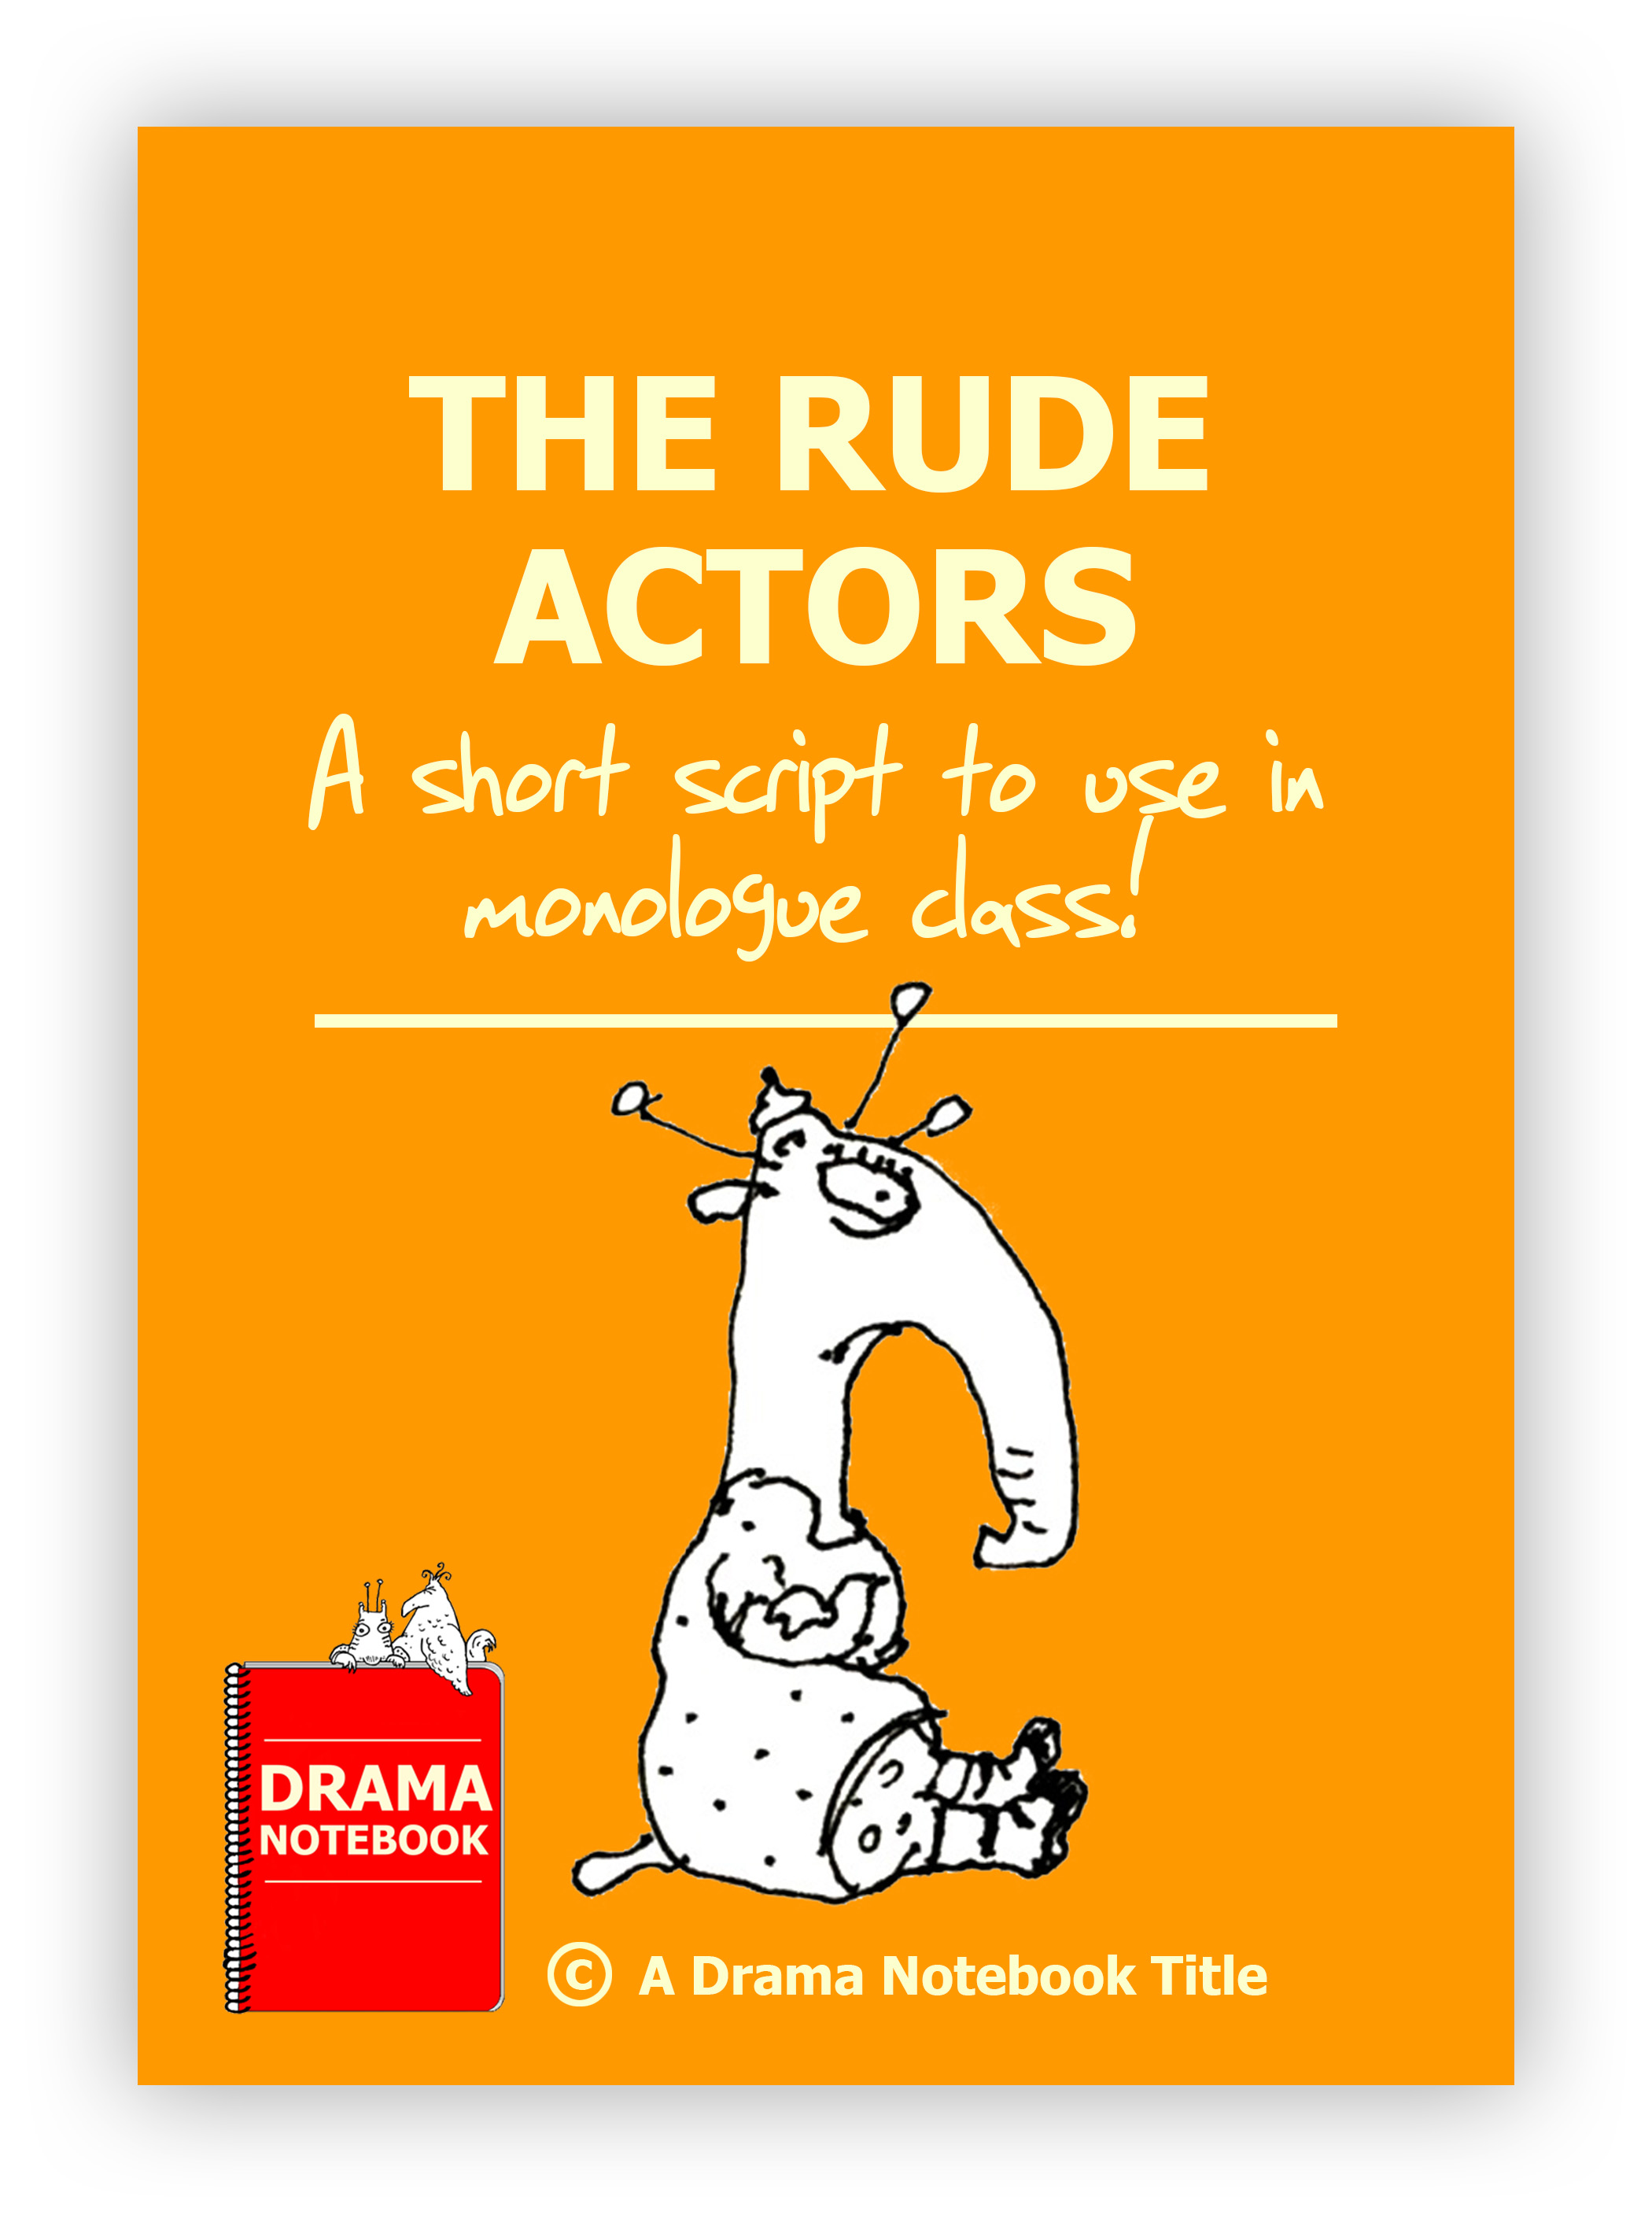 Royalty-free Play Script for Schools-The Rude Actors